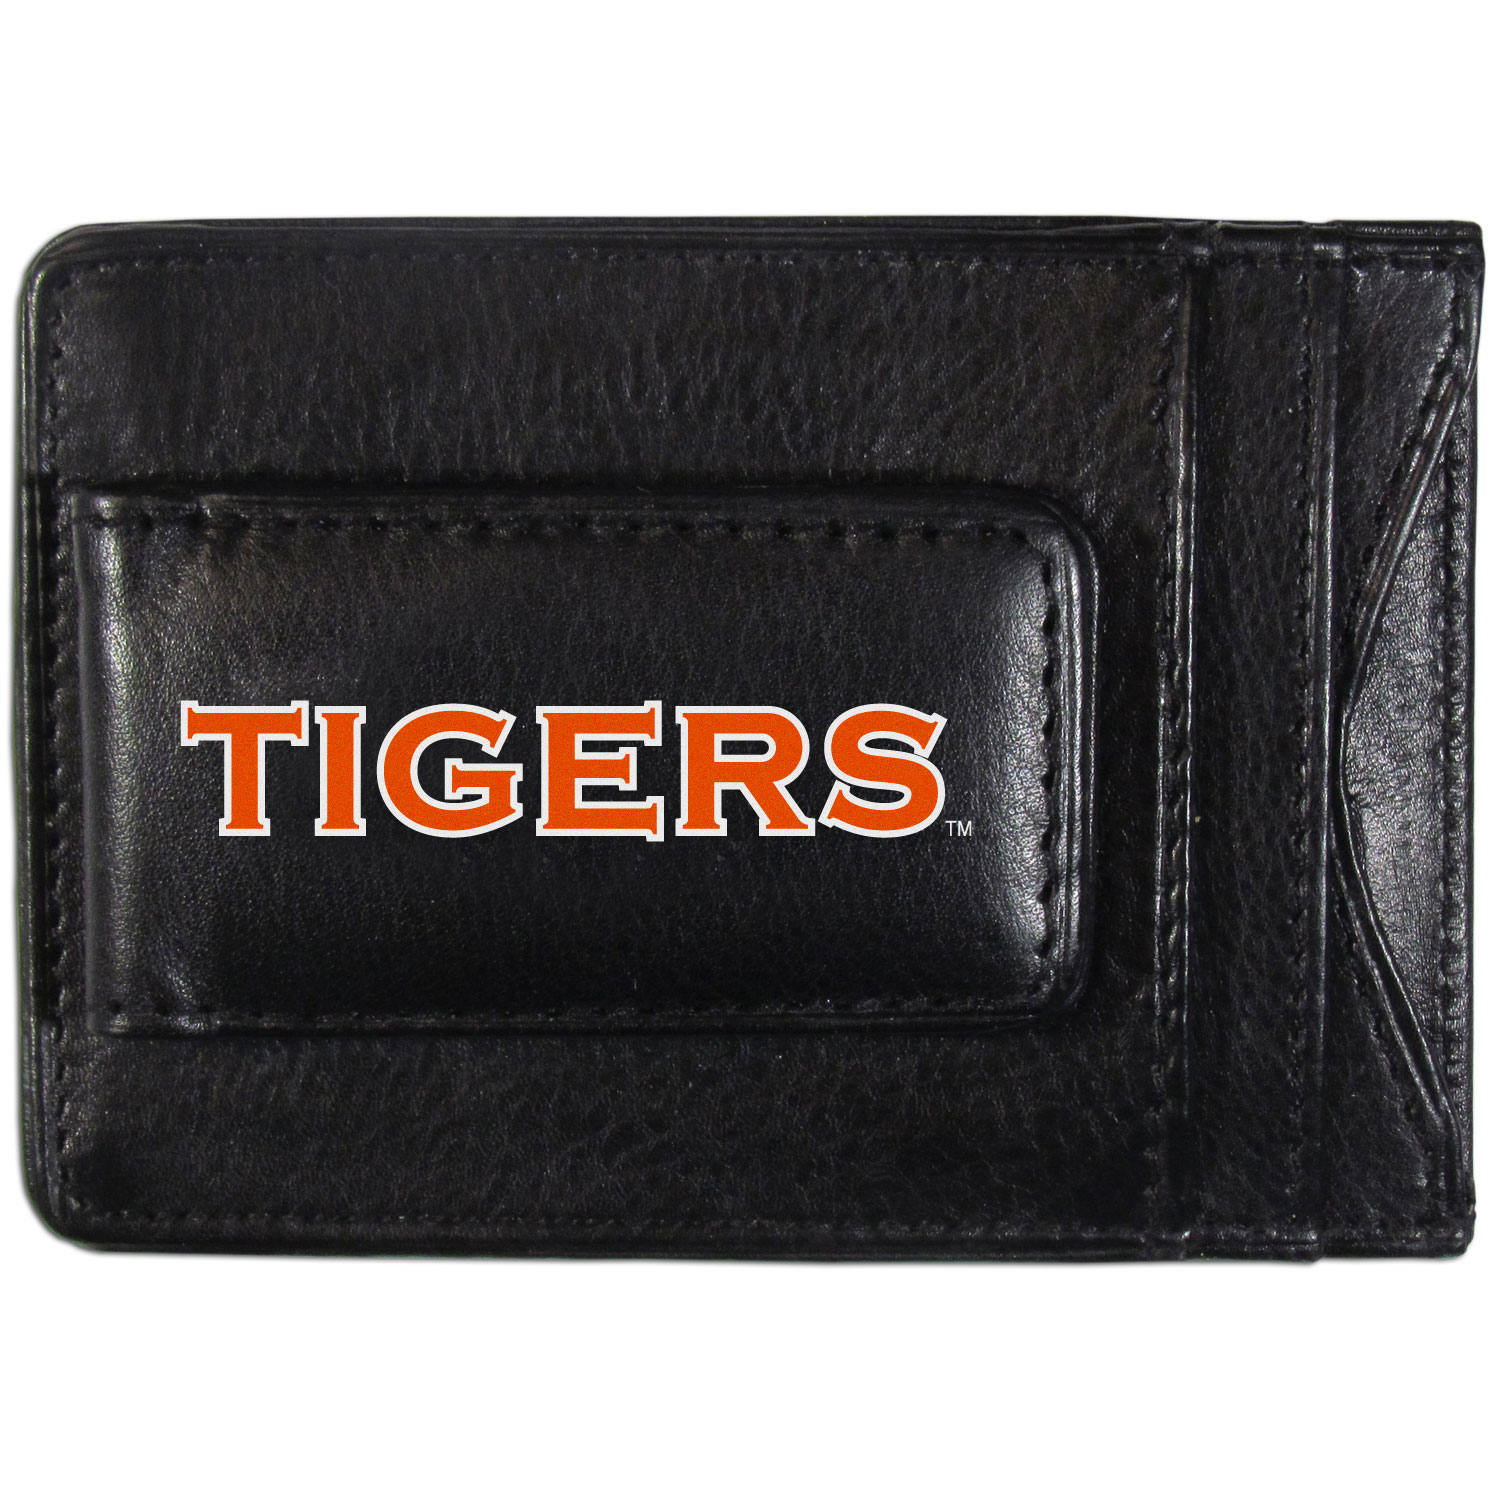 Auburn Tigers Logo Leather Cash and Cardholder - This super slim leather wallet lets you have all the benefits of a money clip while keeping the organization of a wallet. On one side of this front pocket wallet there is a strong, magnetic money clip to keep your cash easily accessible and the?Auburn Tigers team logo on the front. The versatile men's accessory is a perfect addition to your fan apparel.